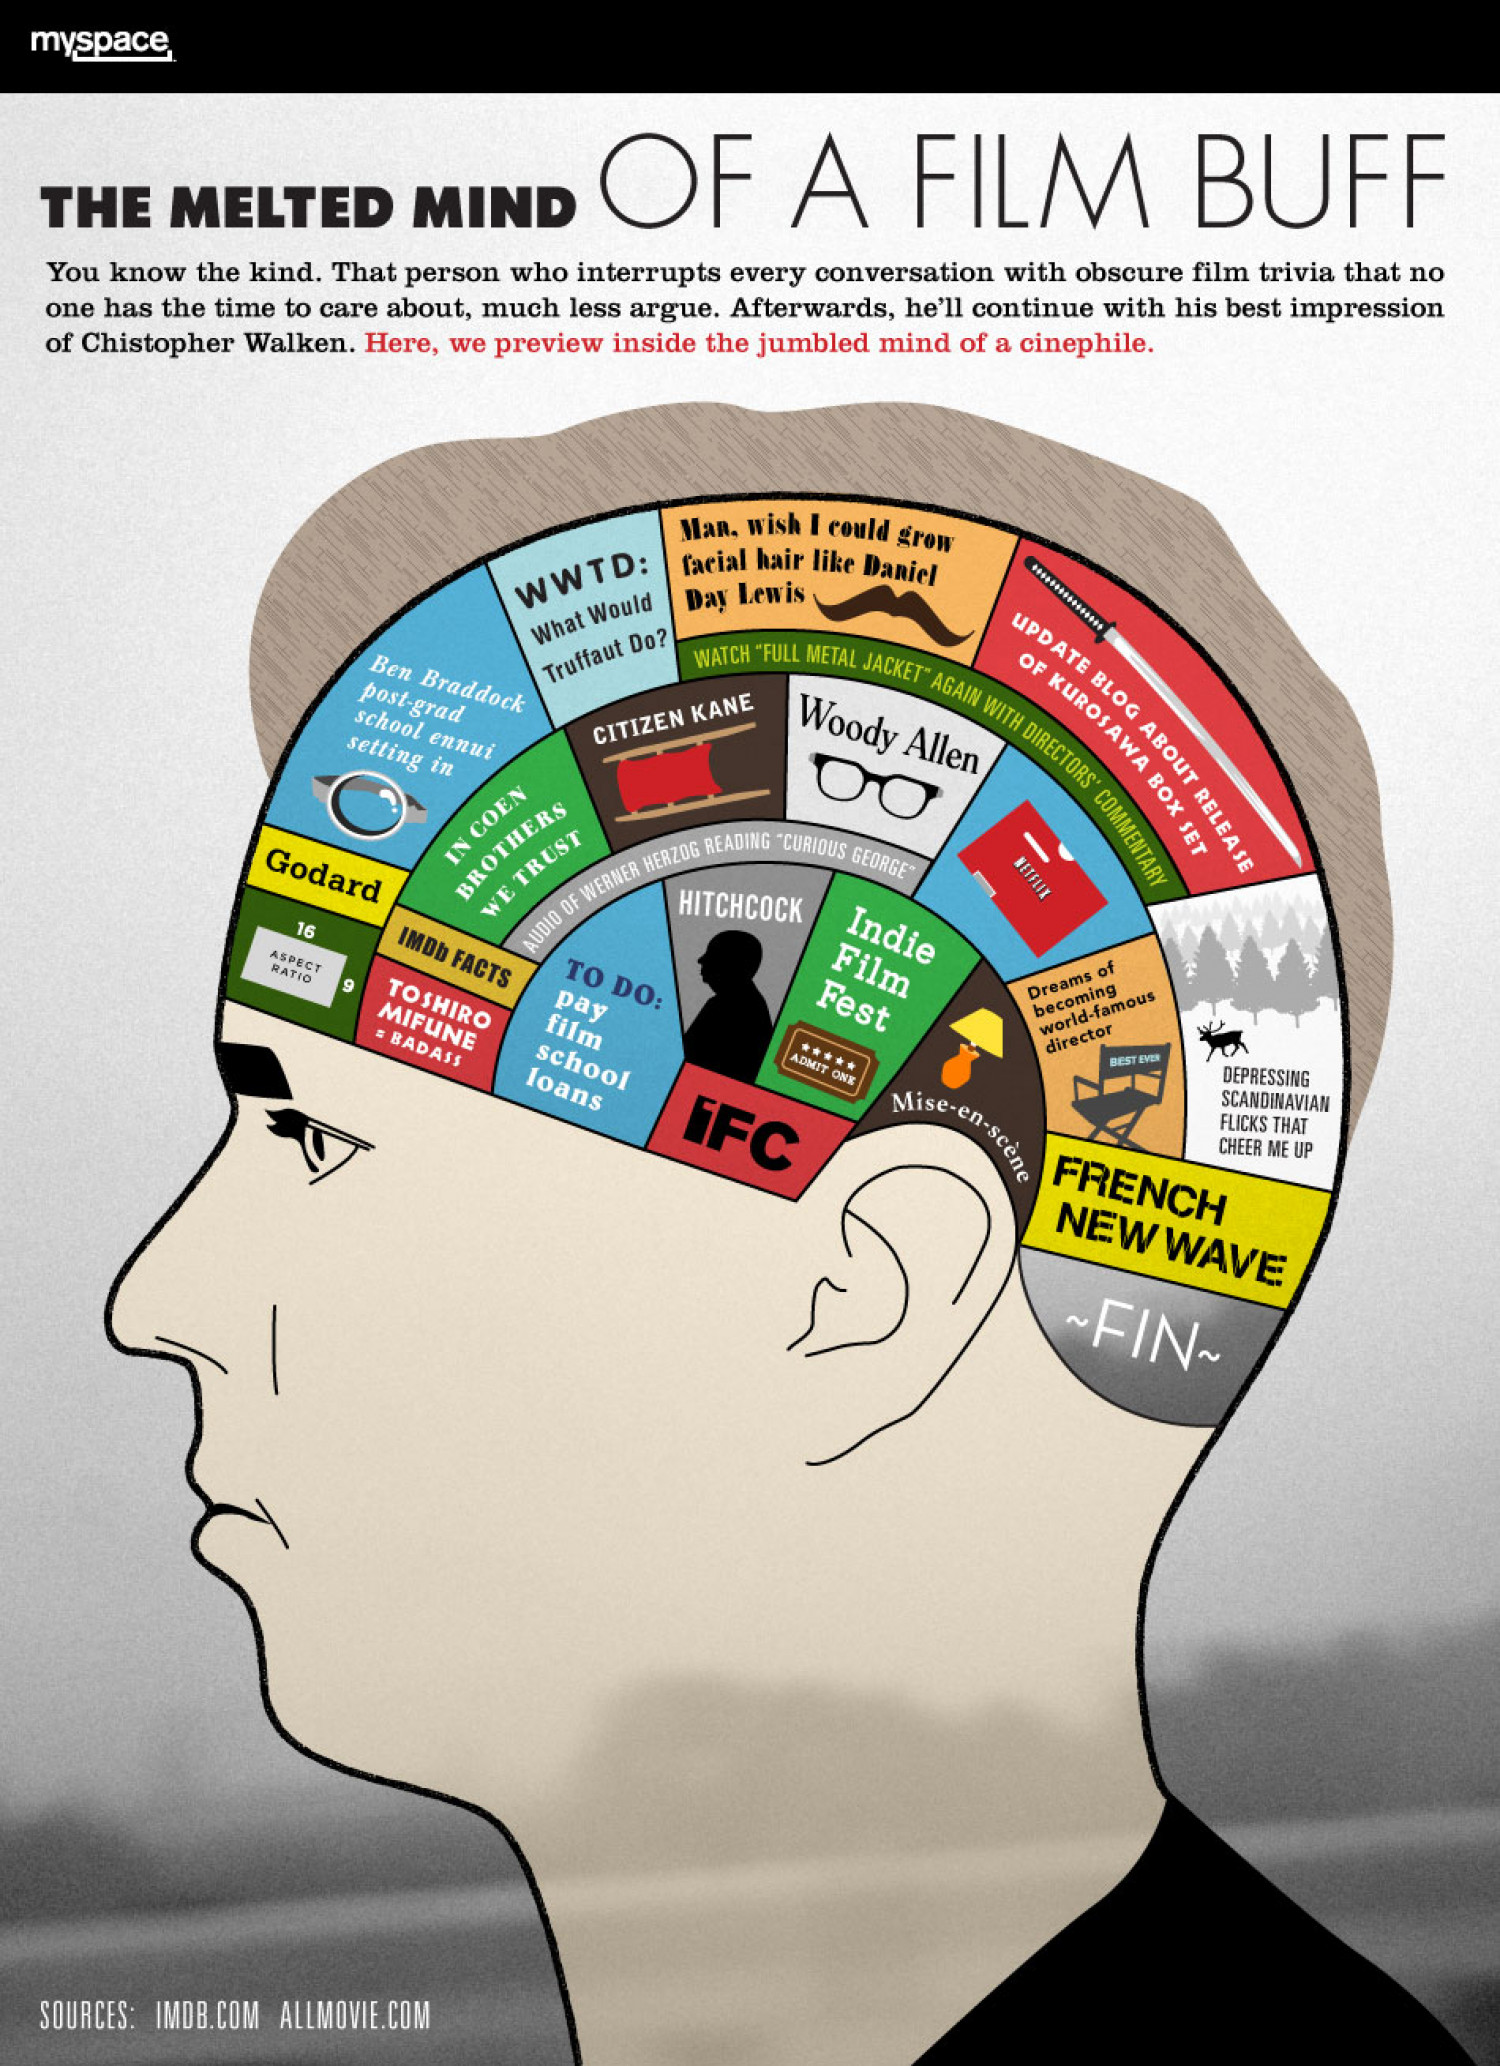 The Melted Mind of a Film Buff  Infographic